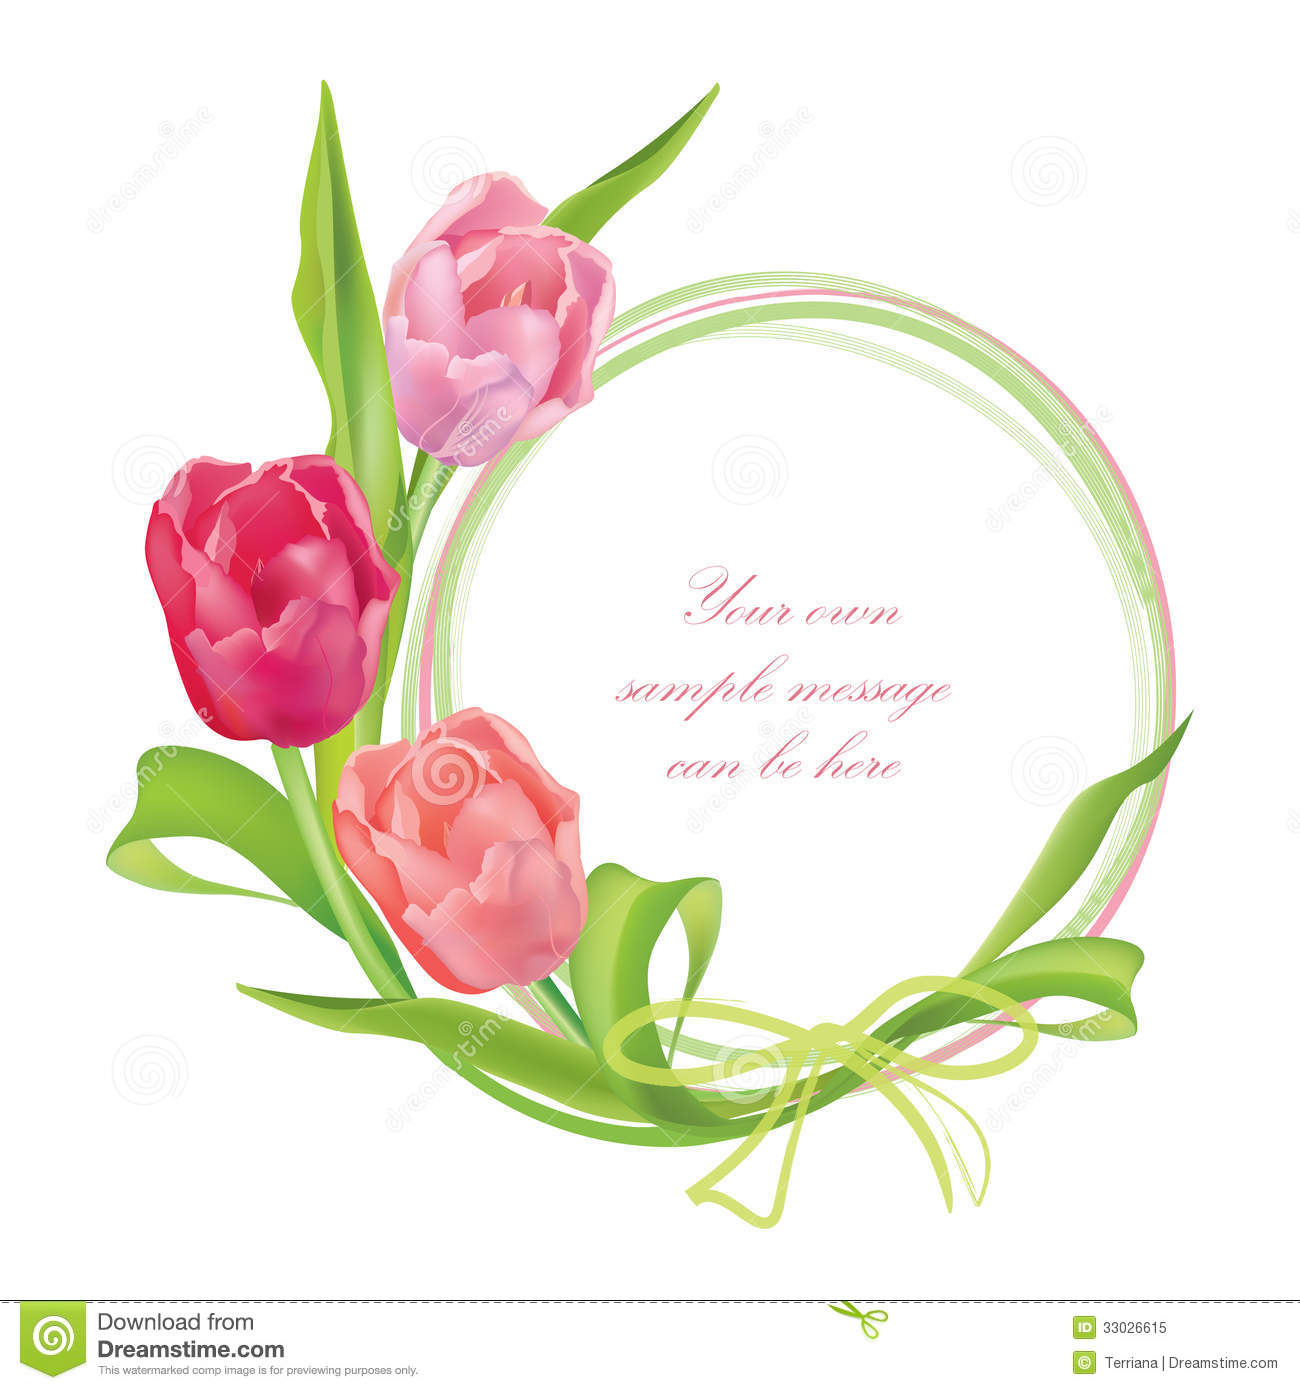 Floral frame set with flower tulip bouquet design floral elements floral frame set with flower tulip bouquet design floral elements altavistaventures Images